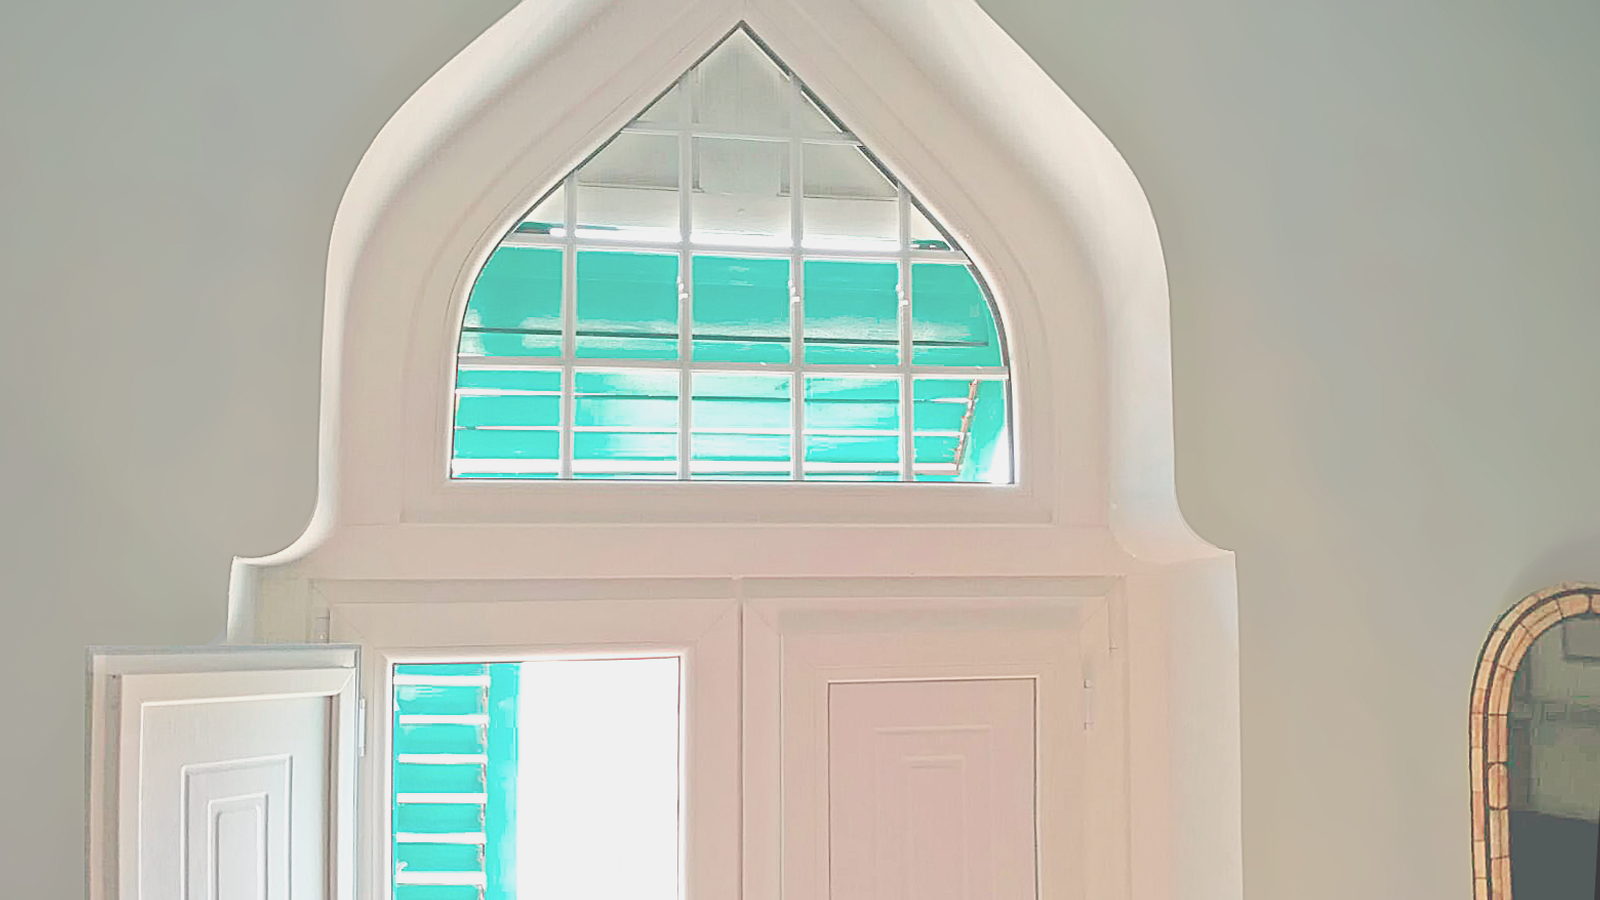 Find This Pin And More On Ventanas De Pvc By Aluplast2001.